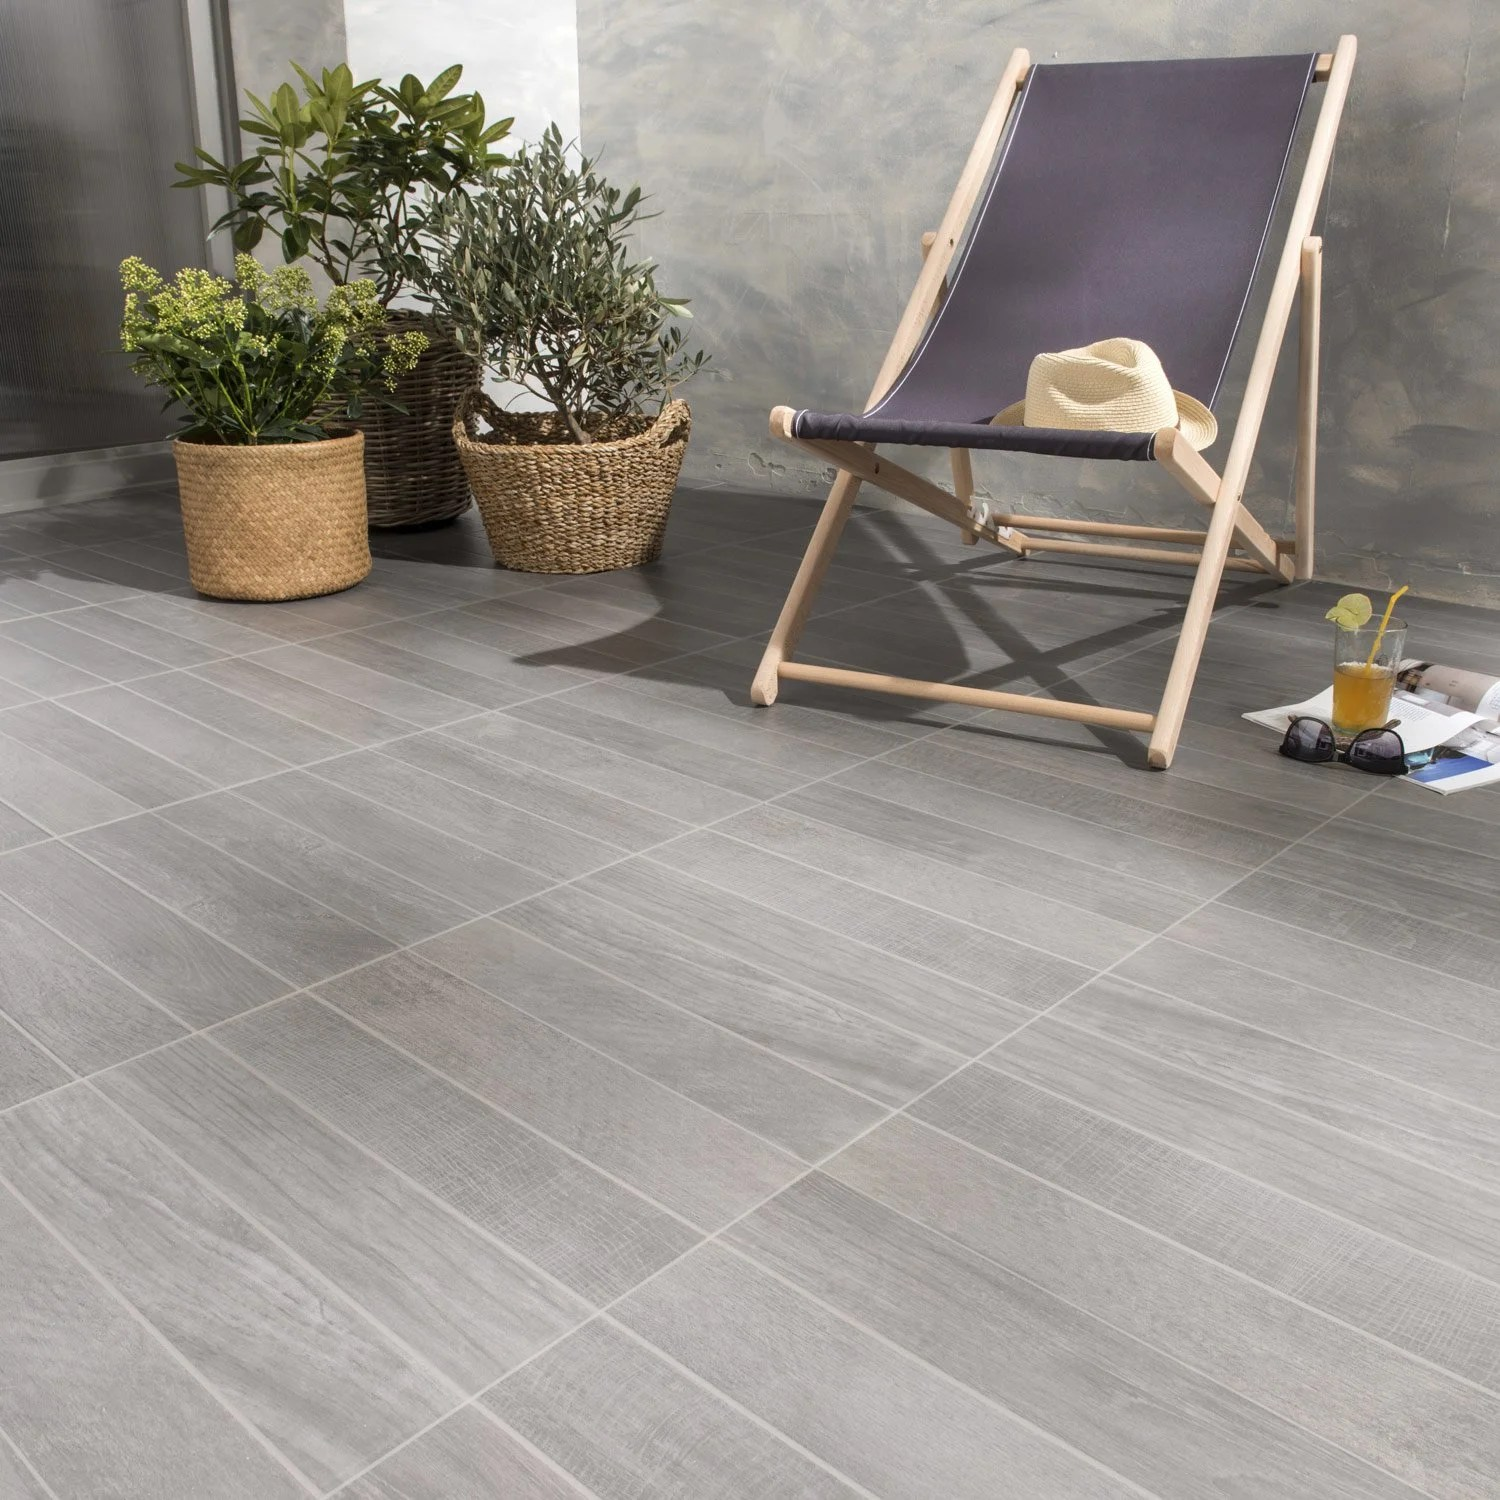 Carrelage Lame Gris Carrelage Anthracite Effet Bois Jungle L 45 X L 45 Cm